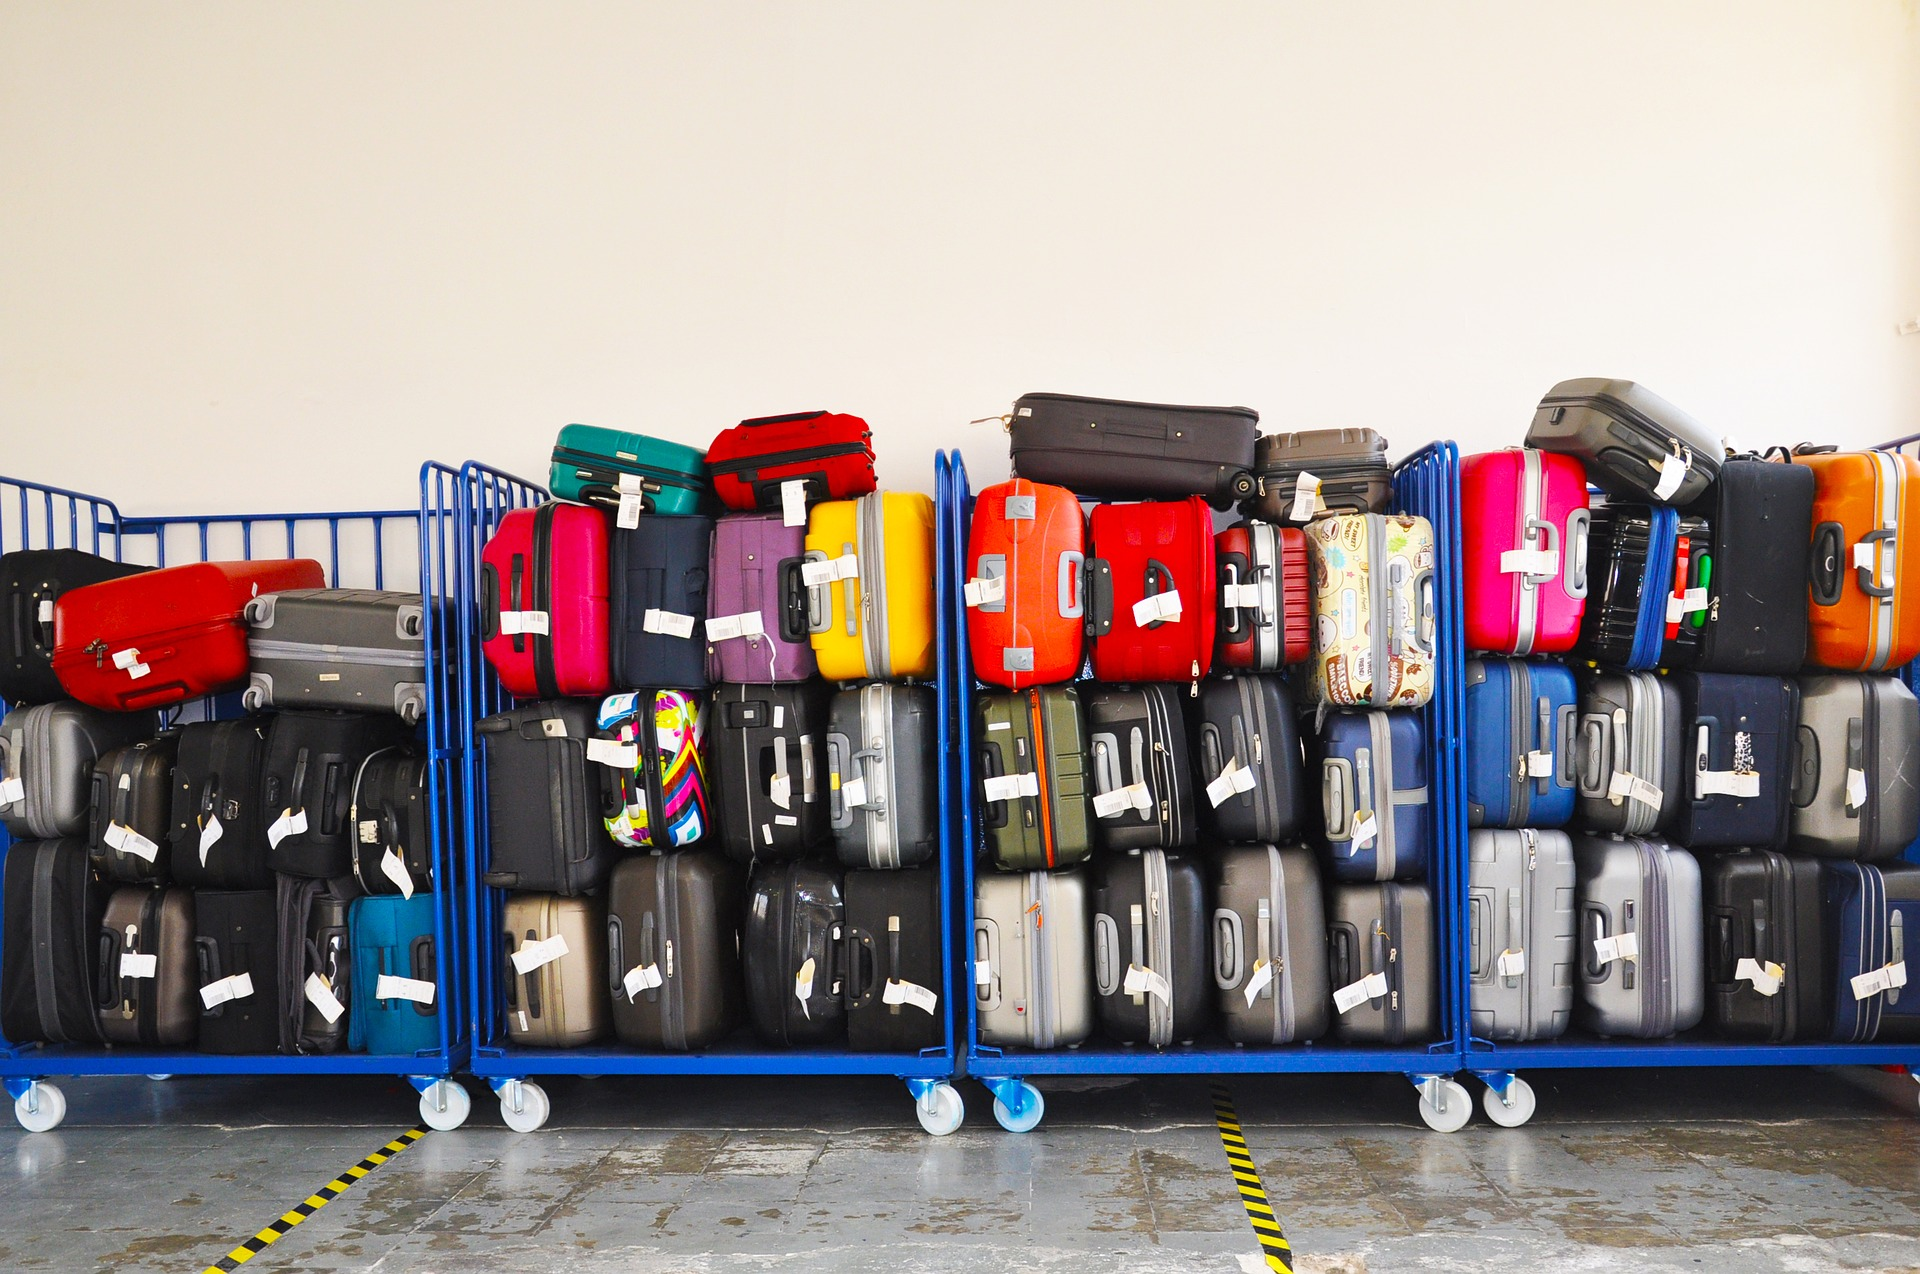 Luggage pile waiting to be loaded on plane.